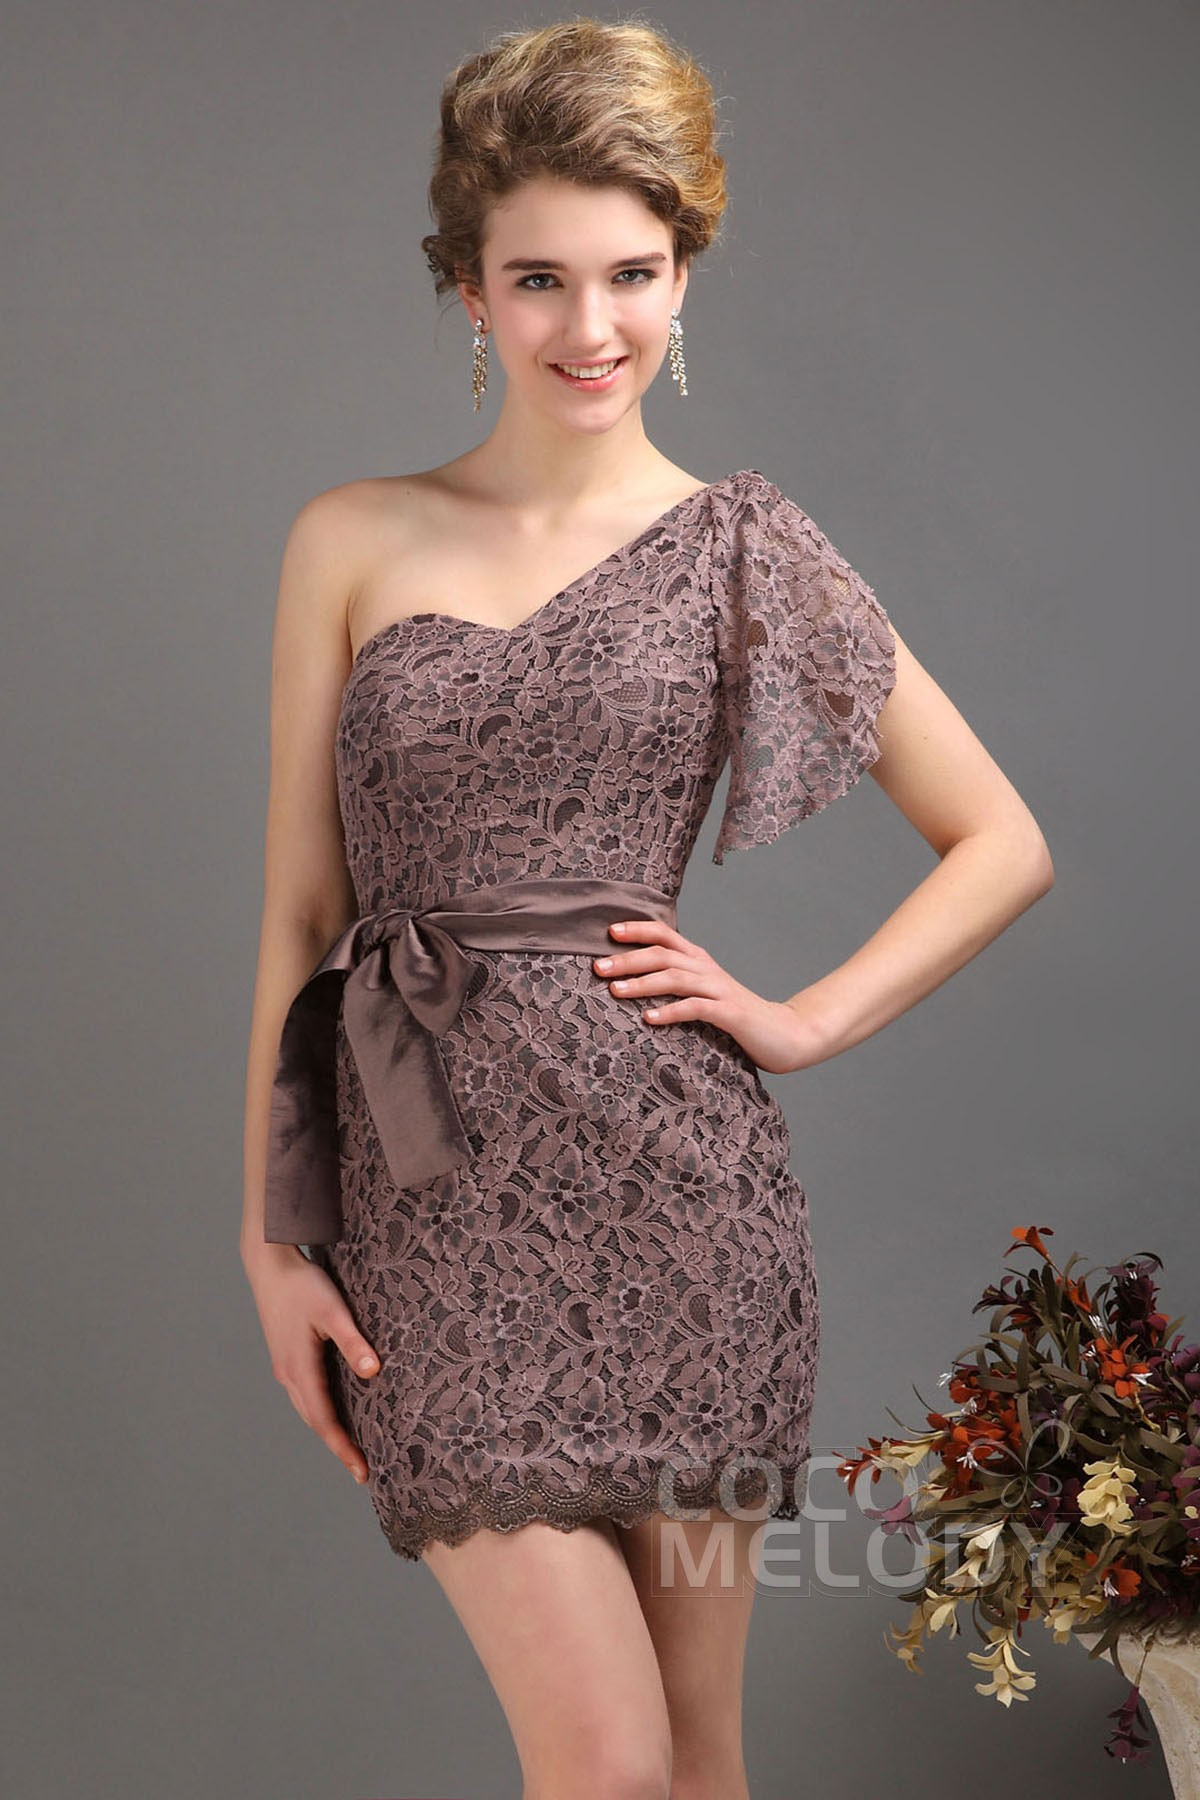 Sequined Lace One Shoulder Dress. Color: Size Chart. Opens size chart modal. Waist Length. Please select a color and size. ITEM ADDED TO BAG Checkout. Add to My Favorites. find in store. Free shipping on orders over $75, plus free returns in xianggangdishini.gq Details. Top of .